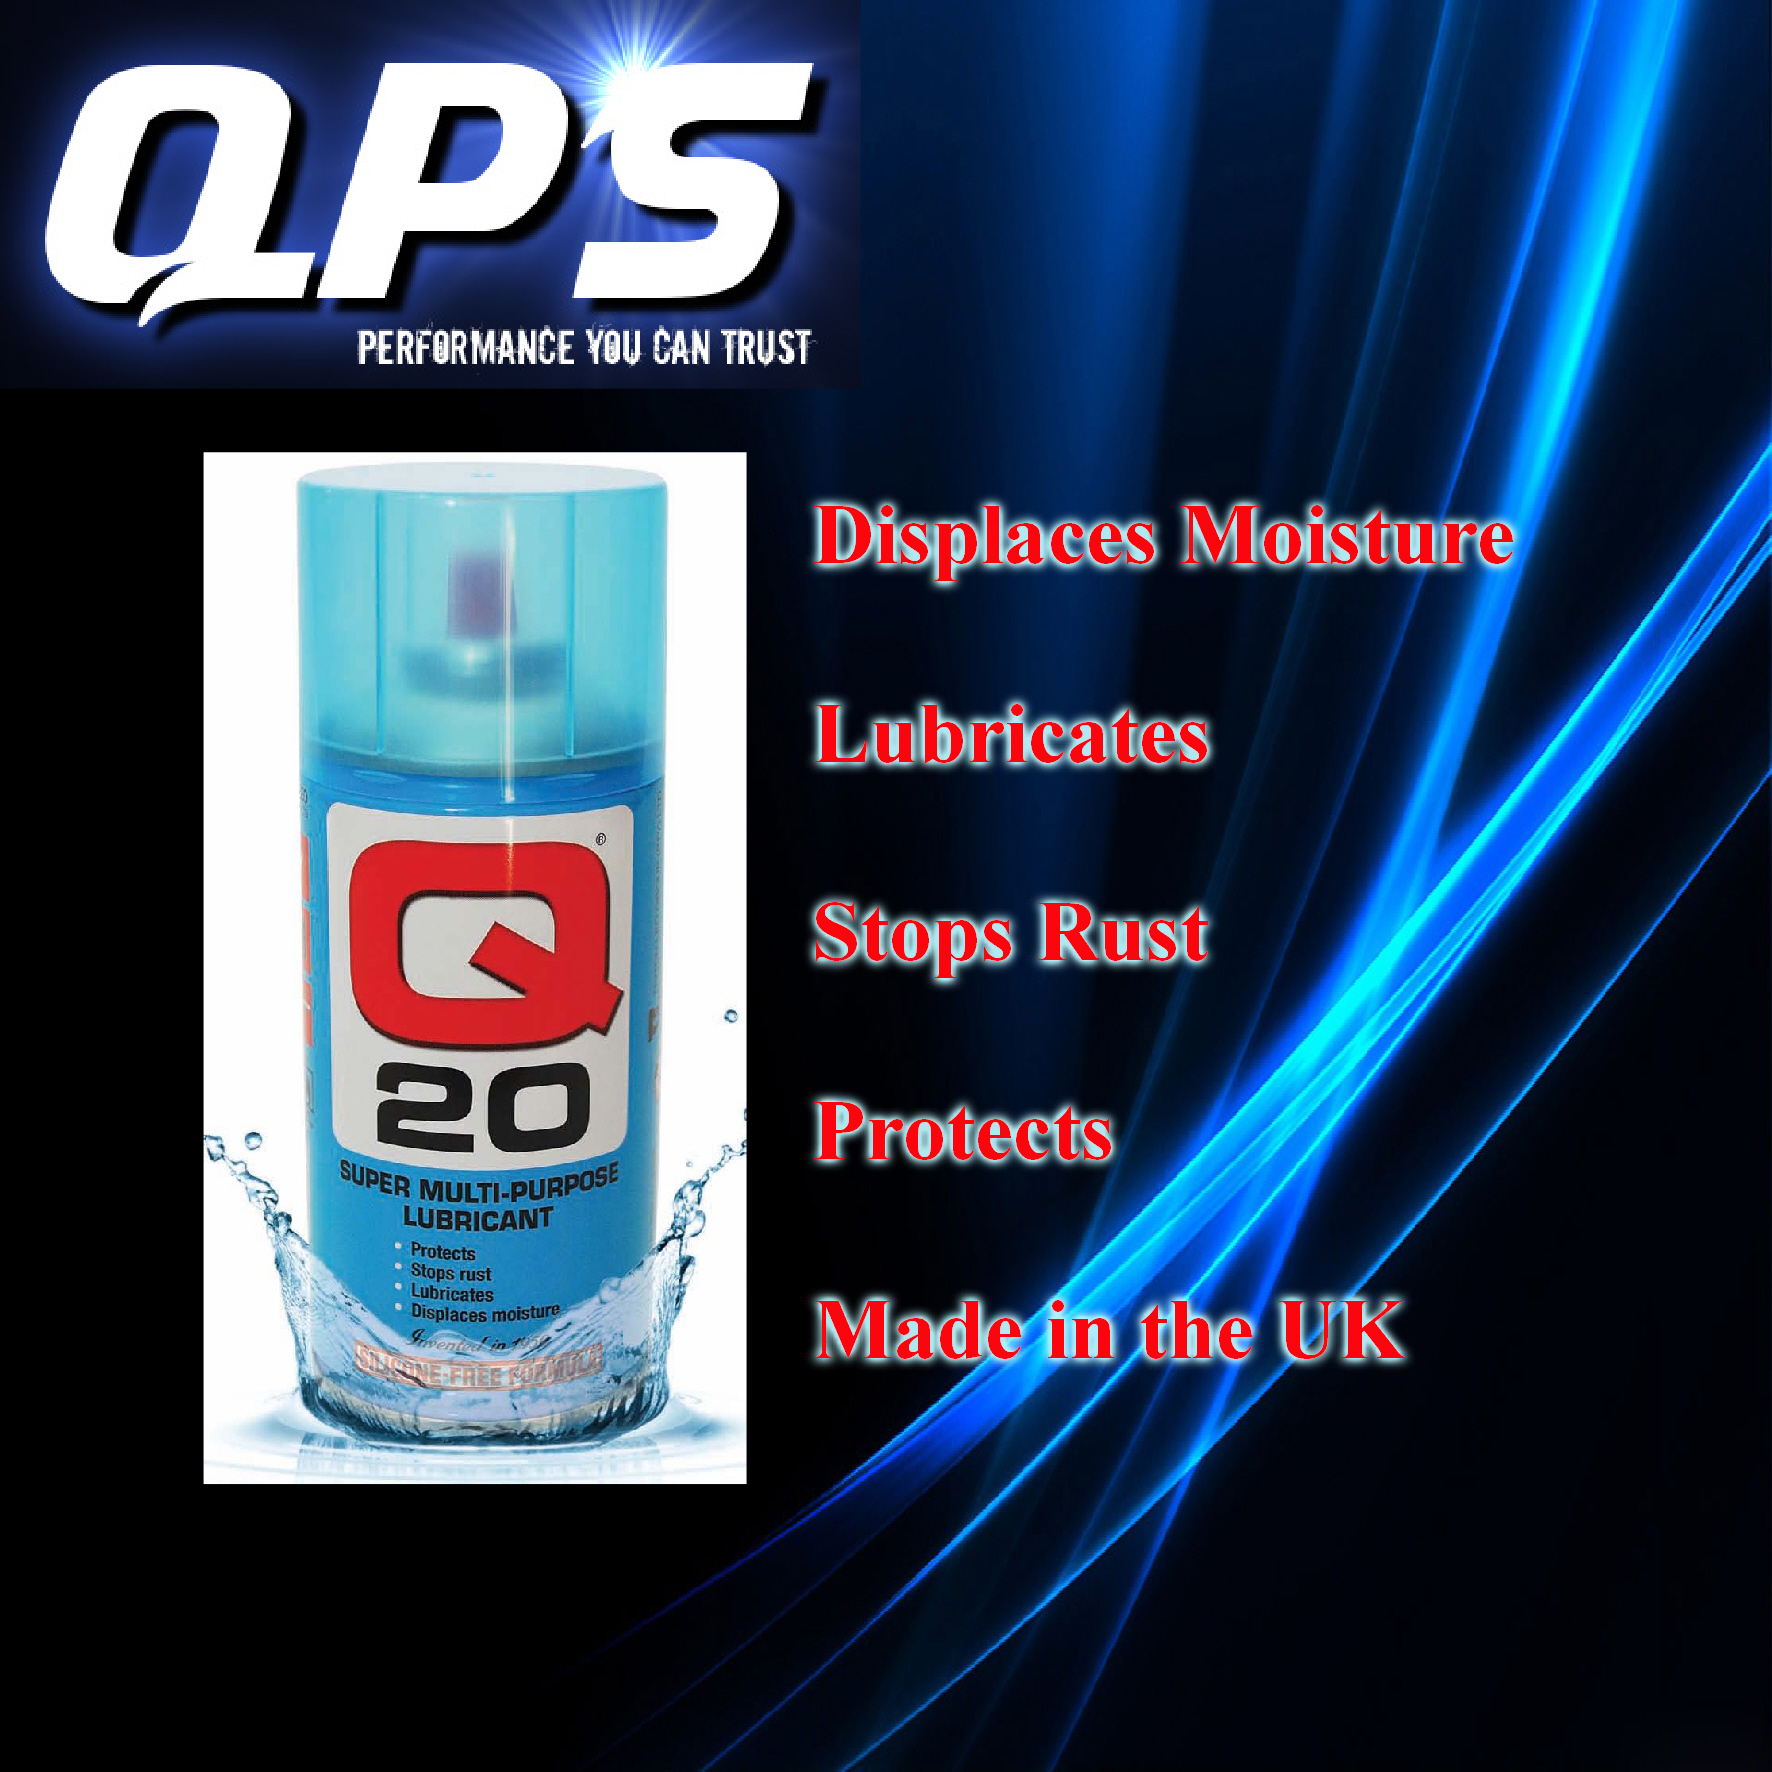 Q20 Super Multi Purpose Lubricant x 300ml, Stops Rust, Protects + Lubricates